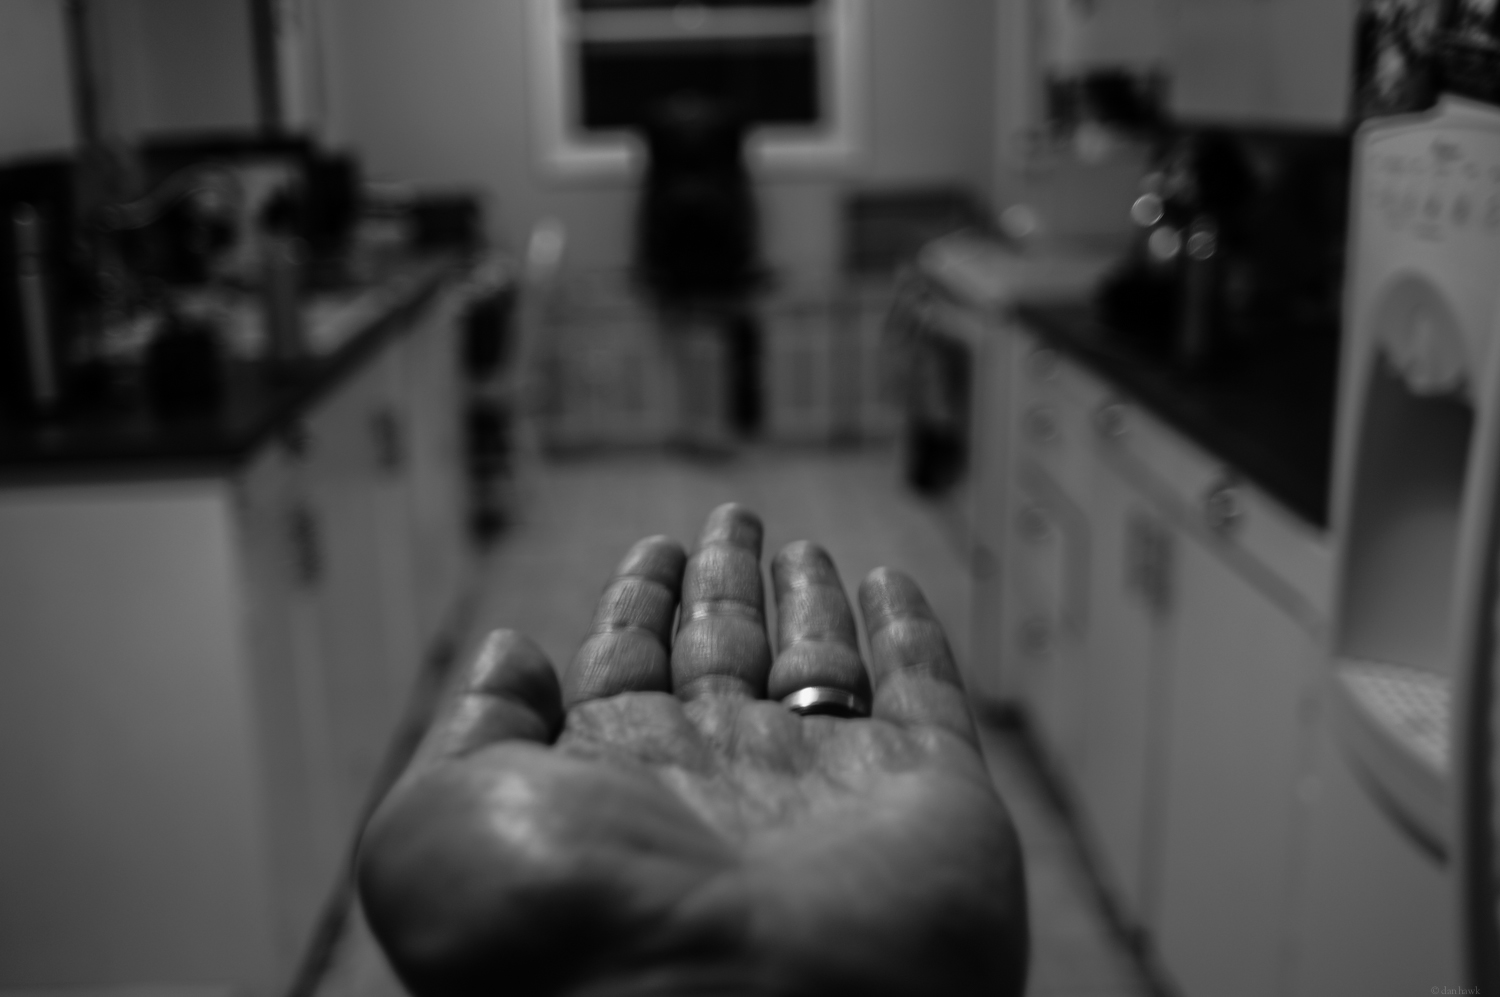 Hand | 365 Project | Dec 30th, 2012